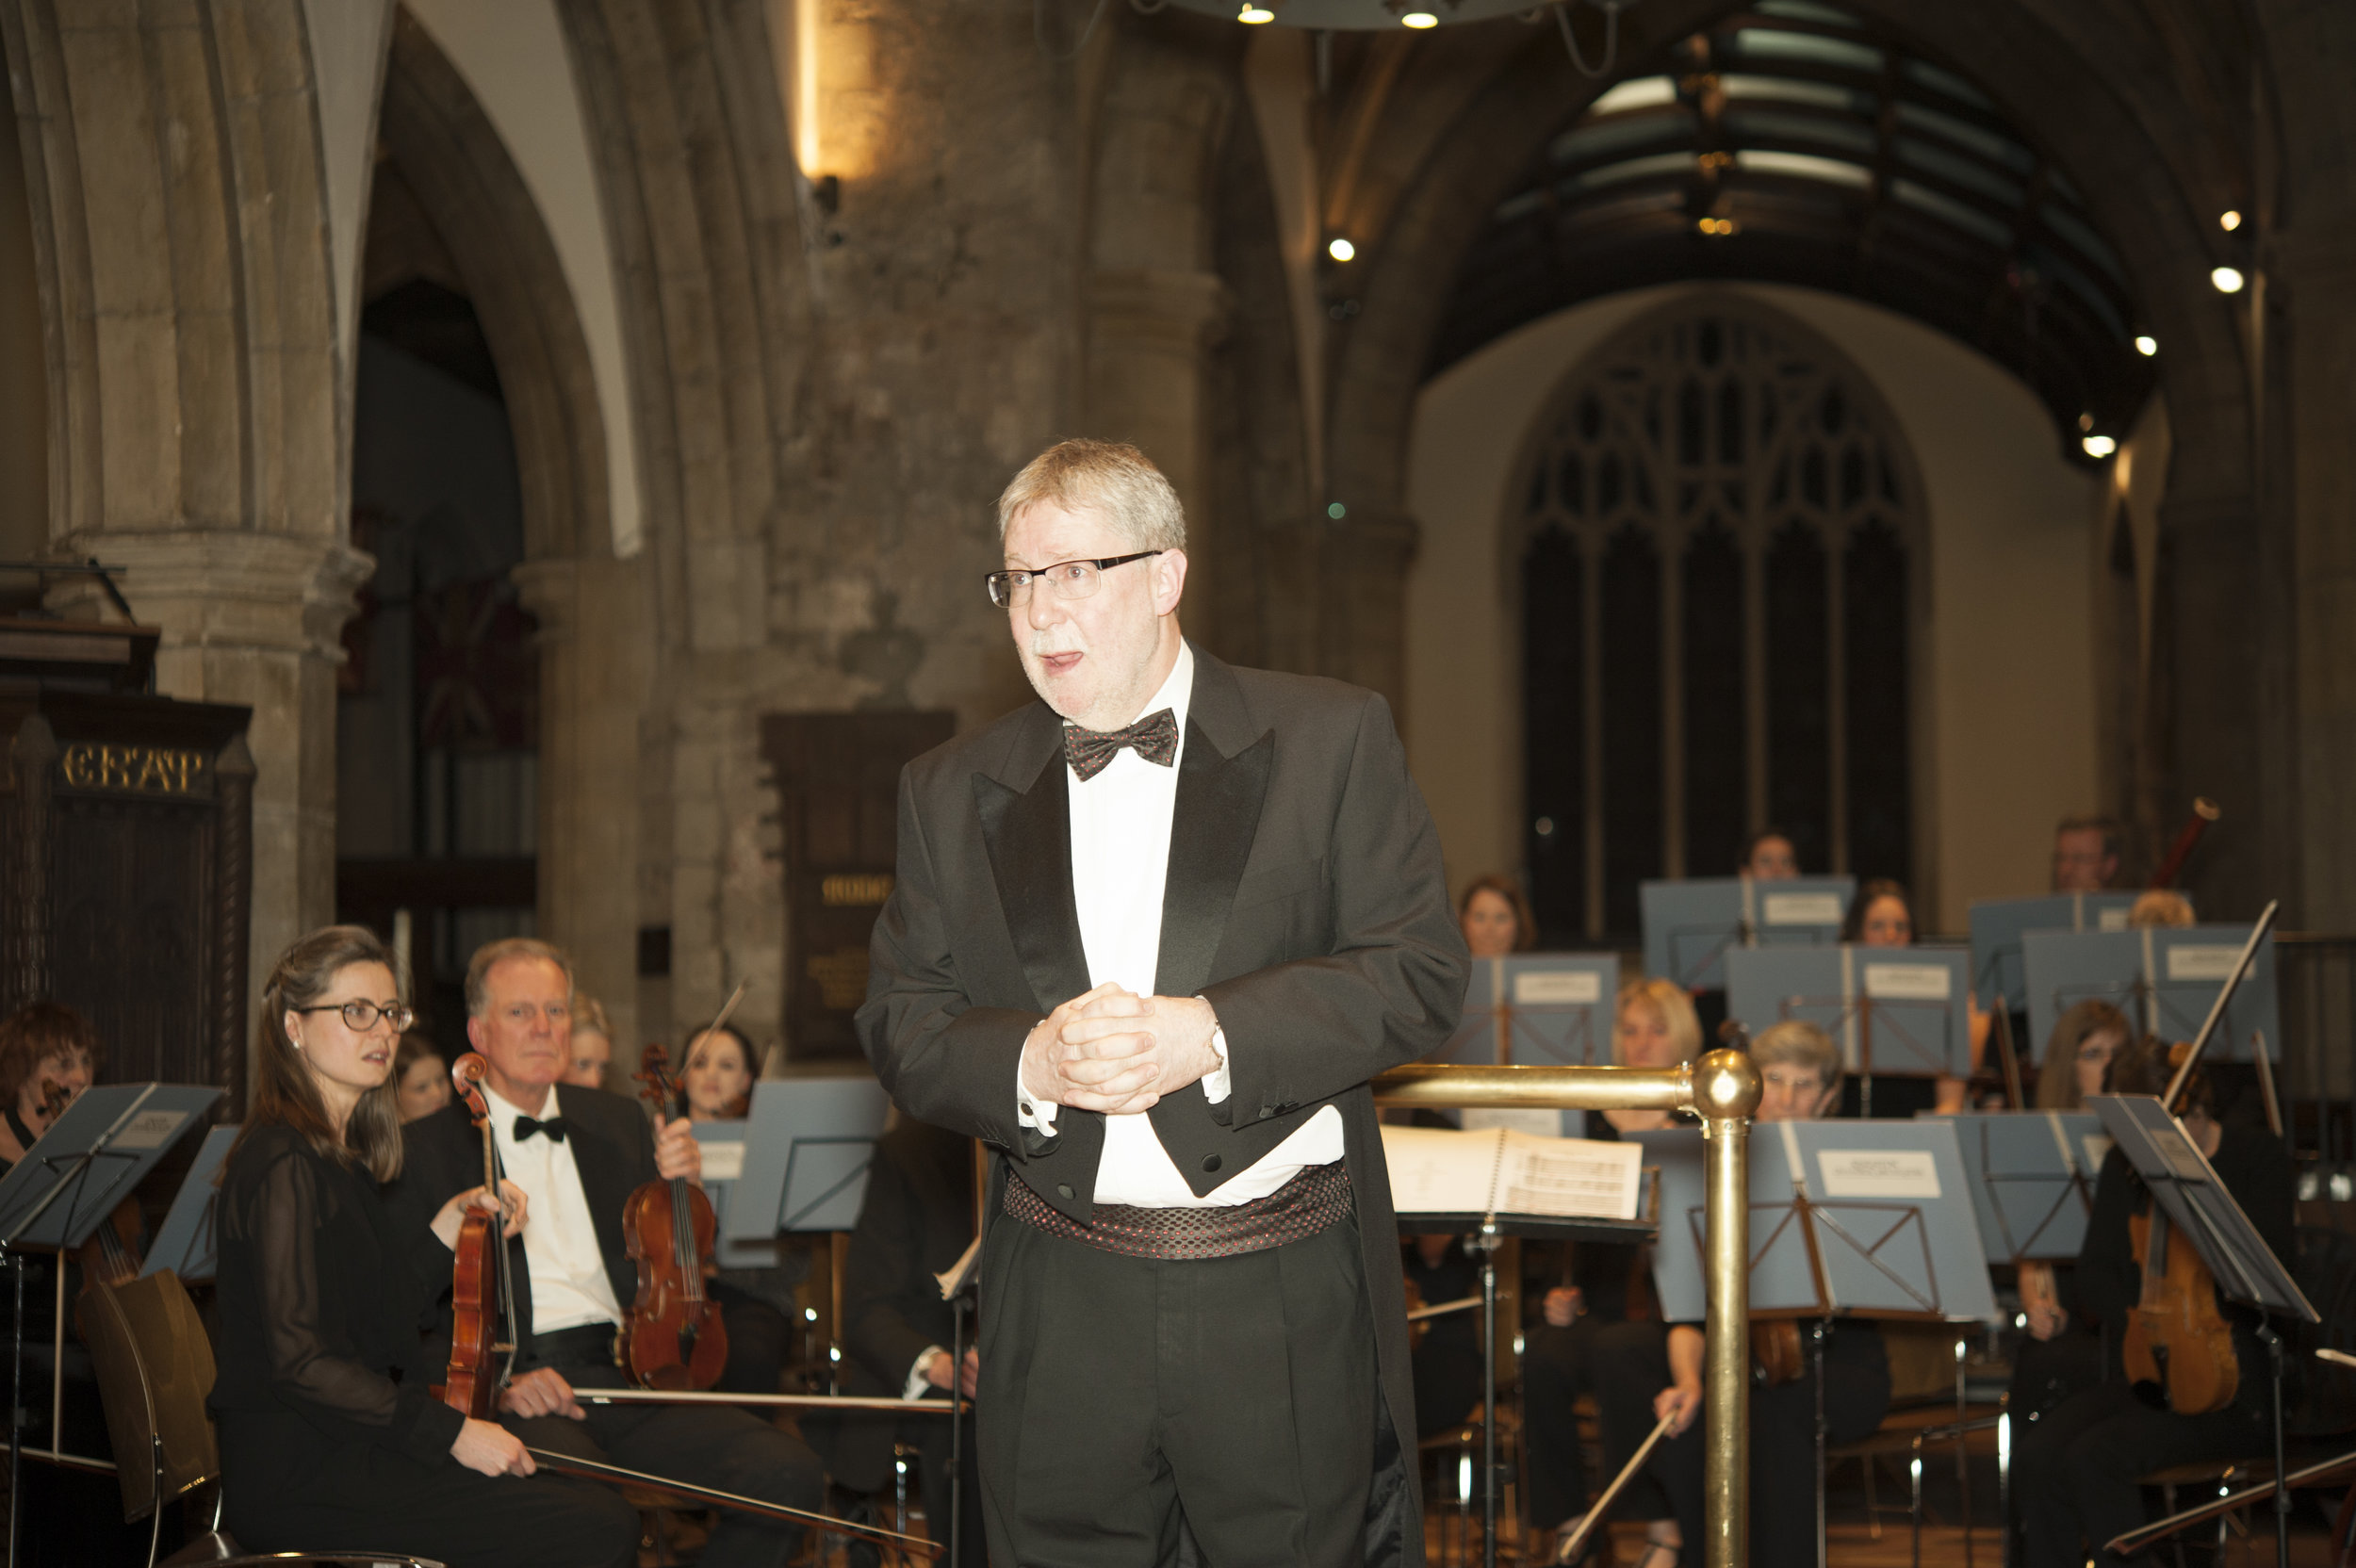 Our conductor, Andy Meyers